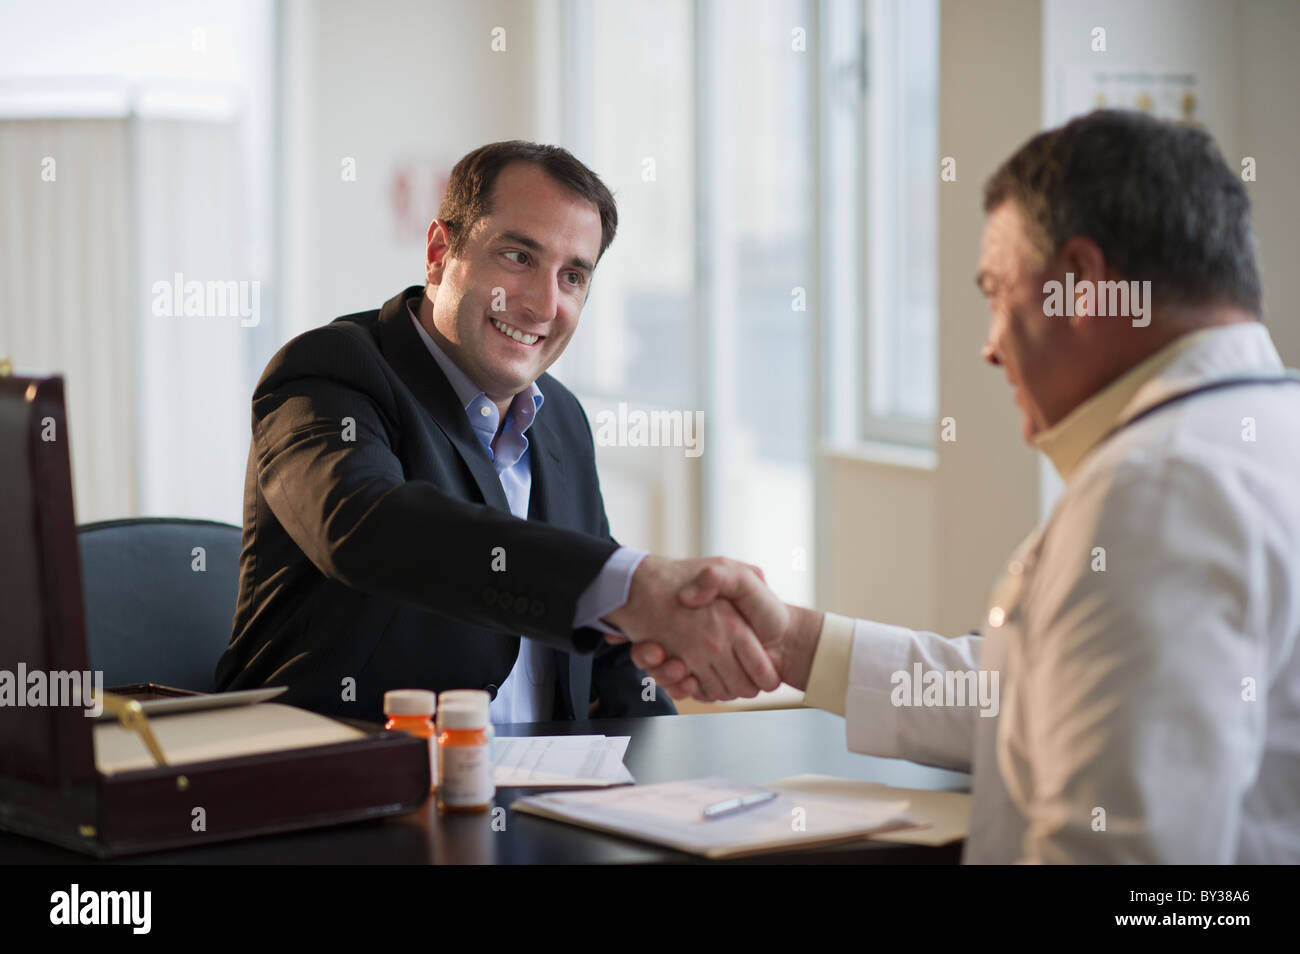 USA, New Jersey, Jersey City, Medical Sales Representative Shaking Hands  With Doctor In